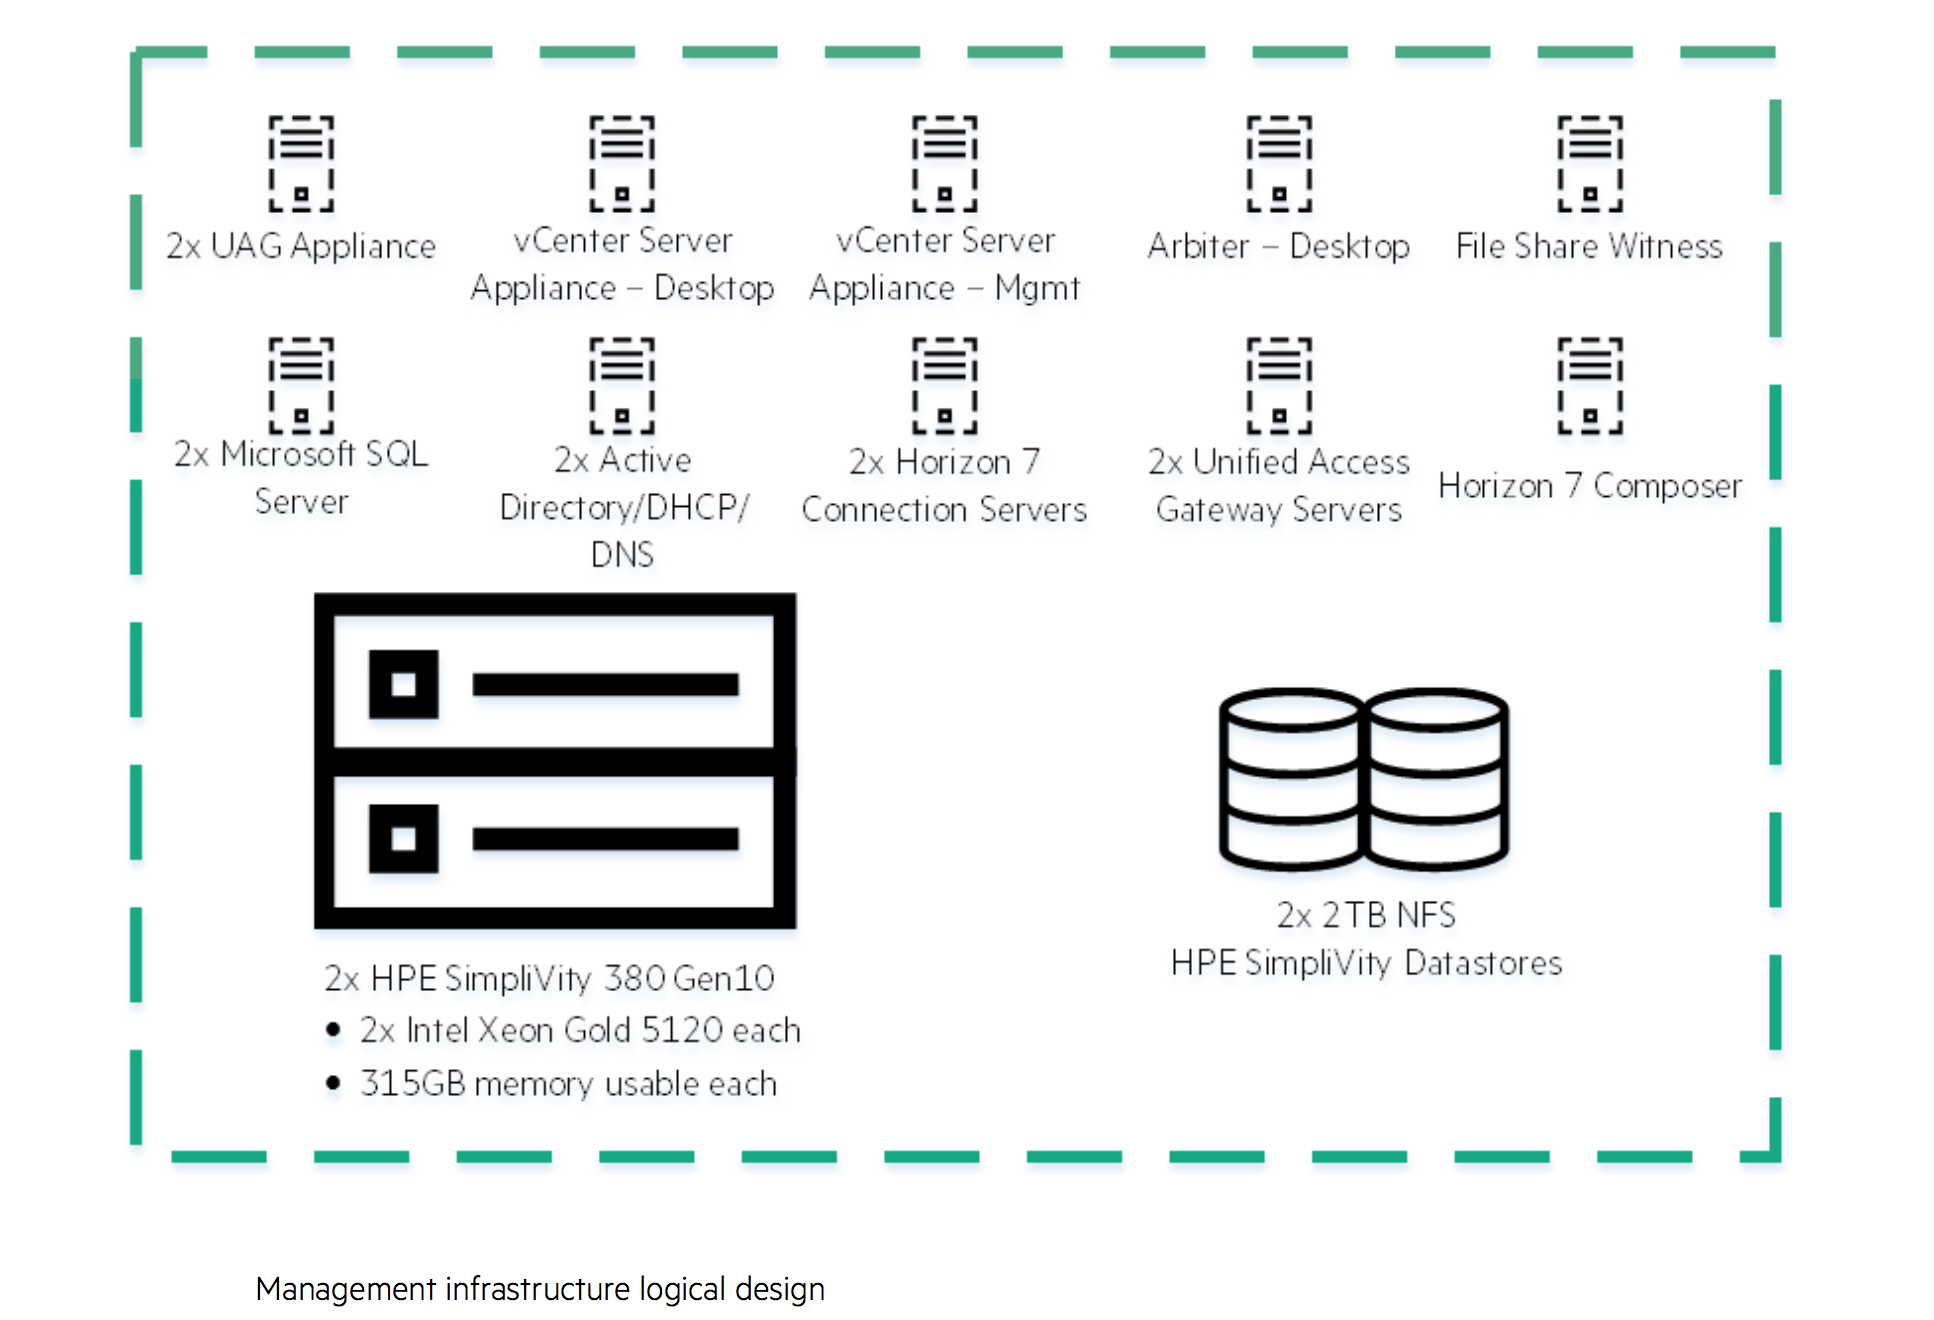 Hpe Reference Architecture For Vmware Horizon On Simplivity 380 380v Single Line Wiring Diagram Description